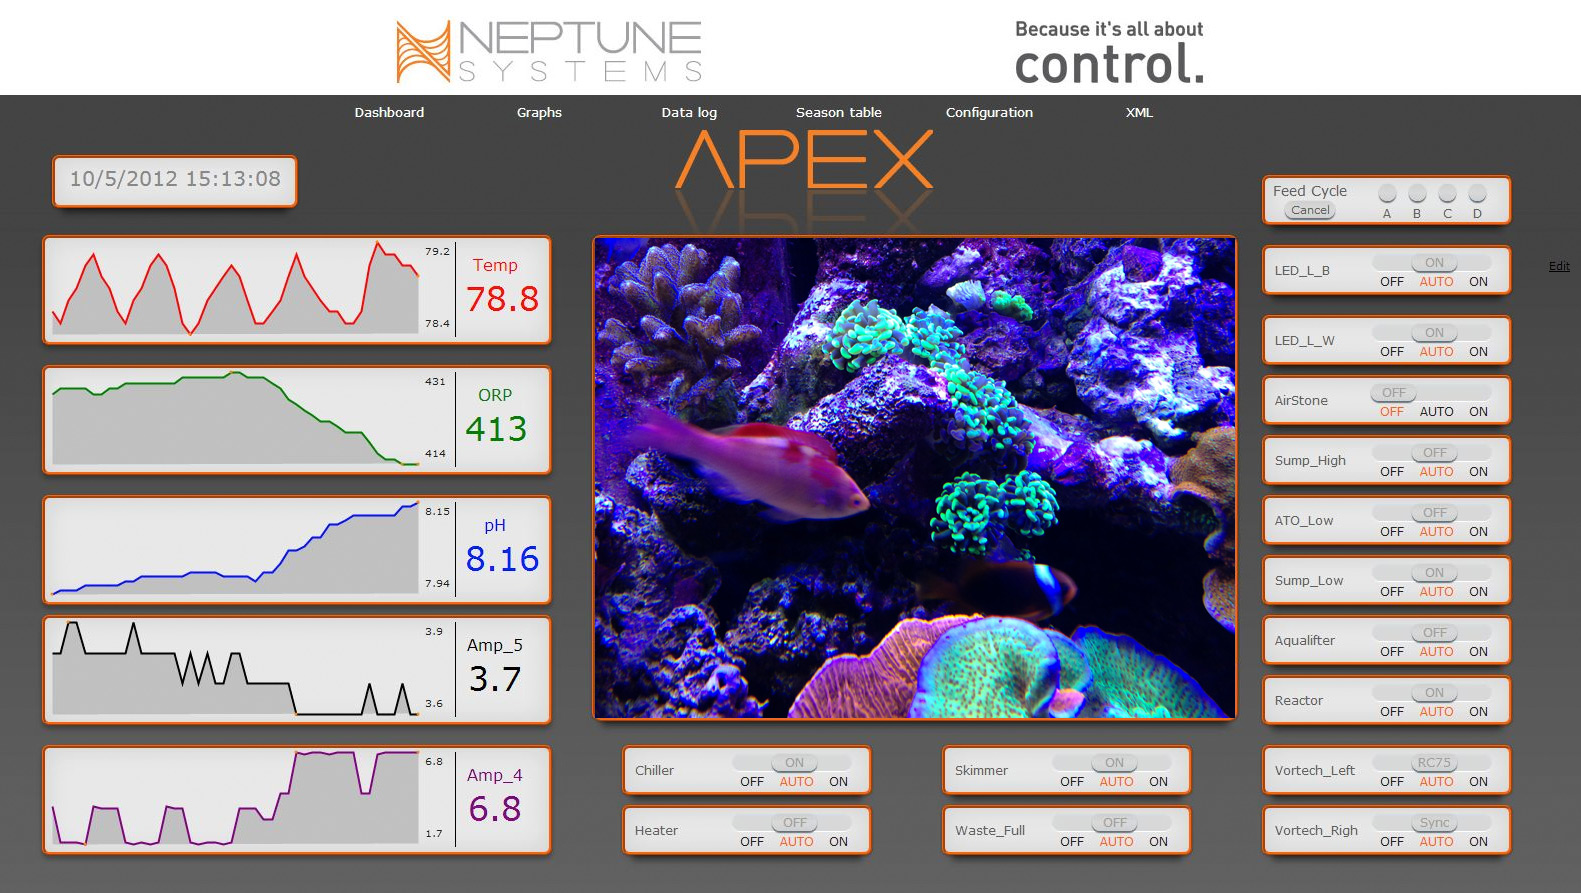 Neptune Systems Apex Dashboard